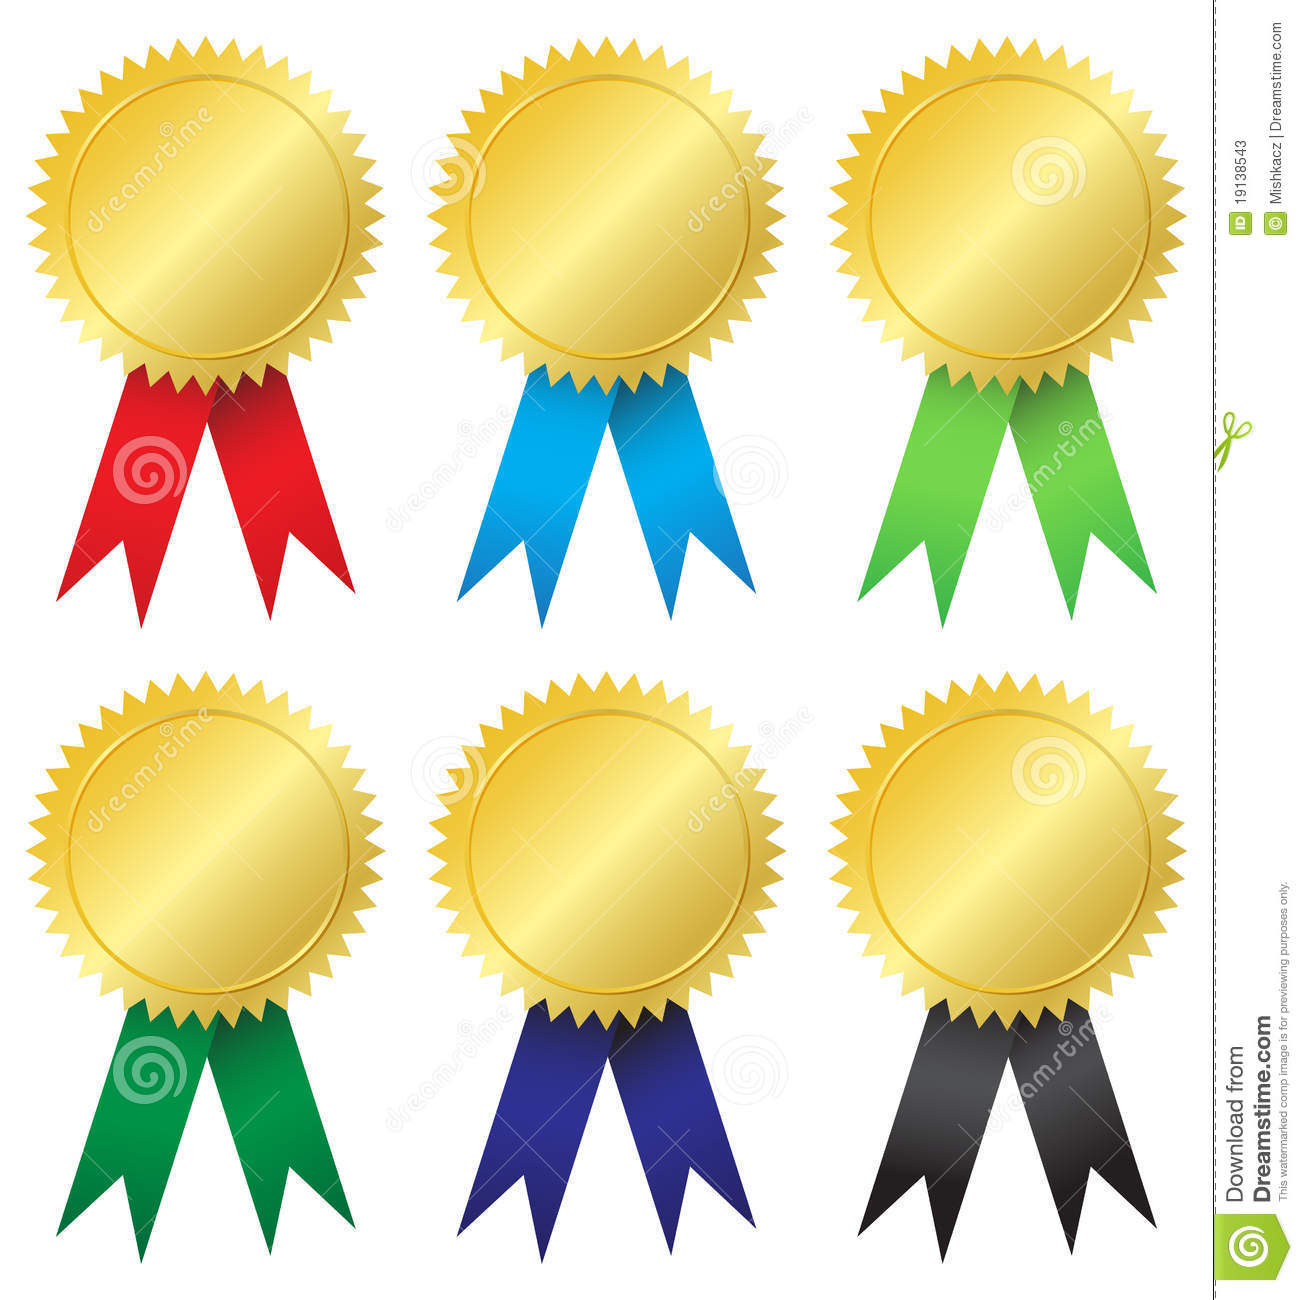 Award medals stock vector. Image of championship, first ...